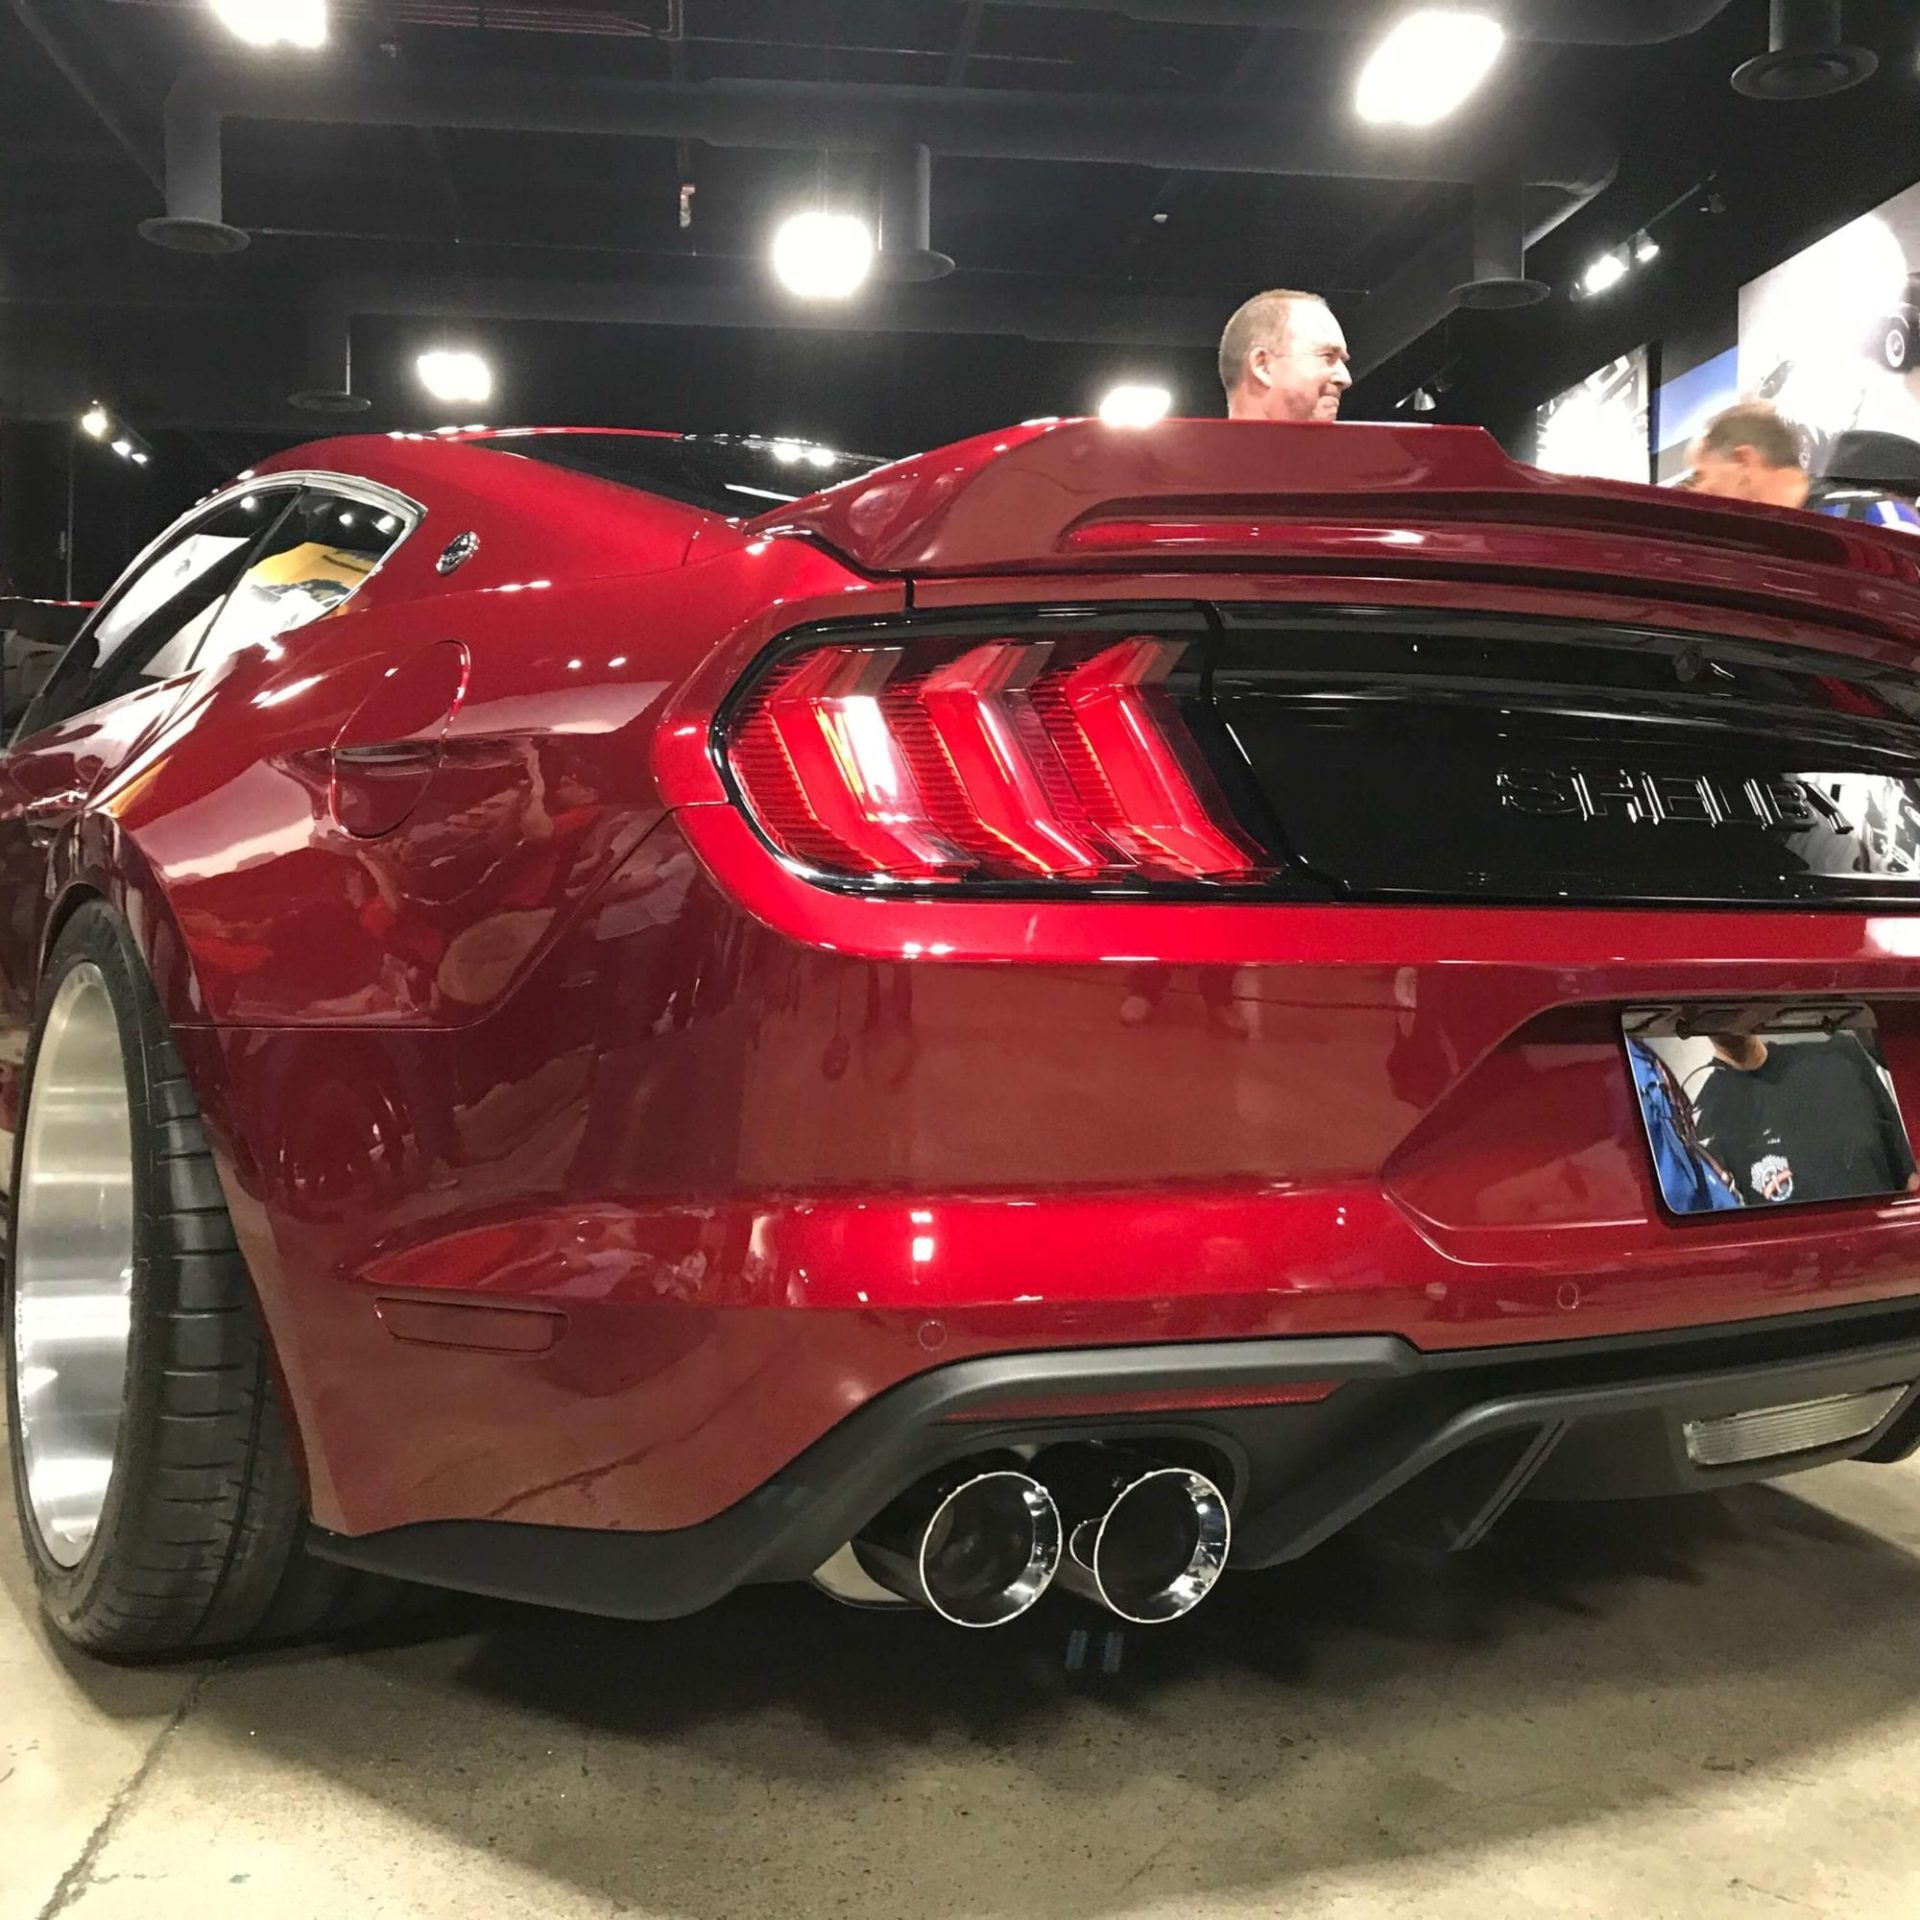 2018 shelby 1000 5.2l whipple supercharger